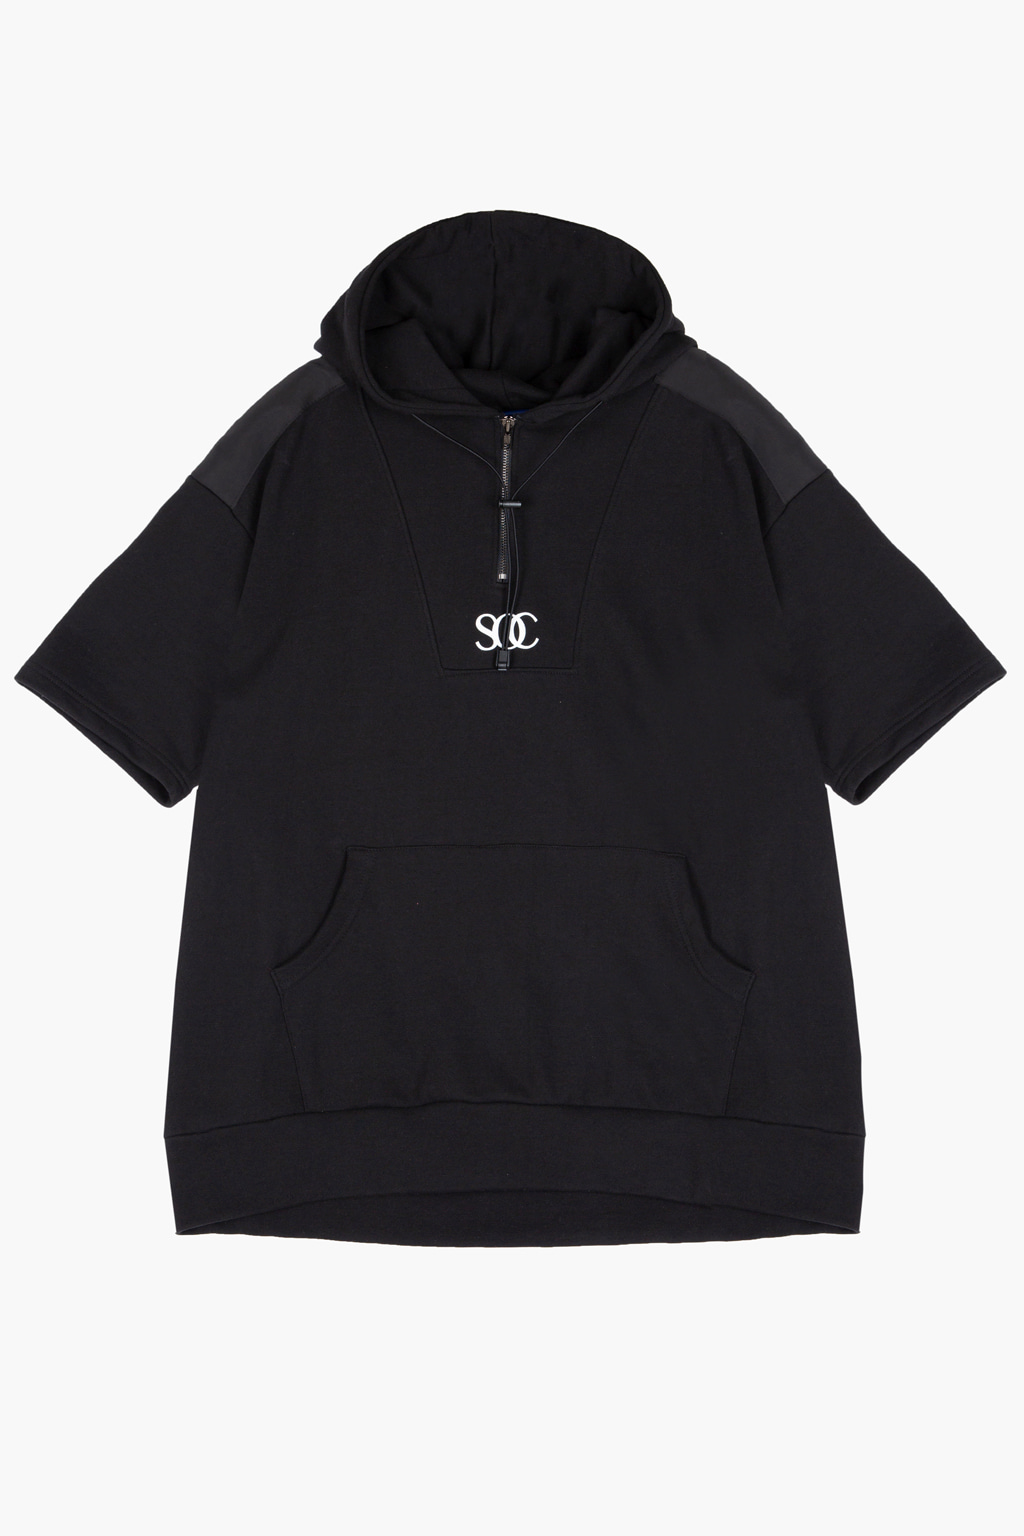 Shoulder Patch Detail Half-Zip 1/2 Hoodie -black